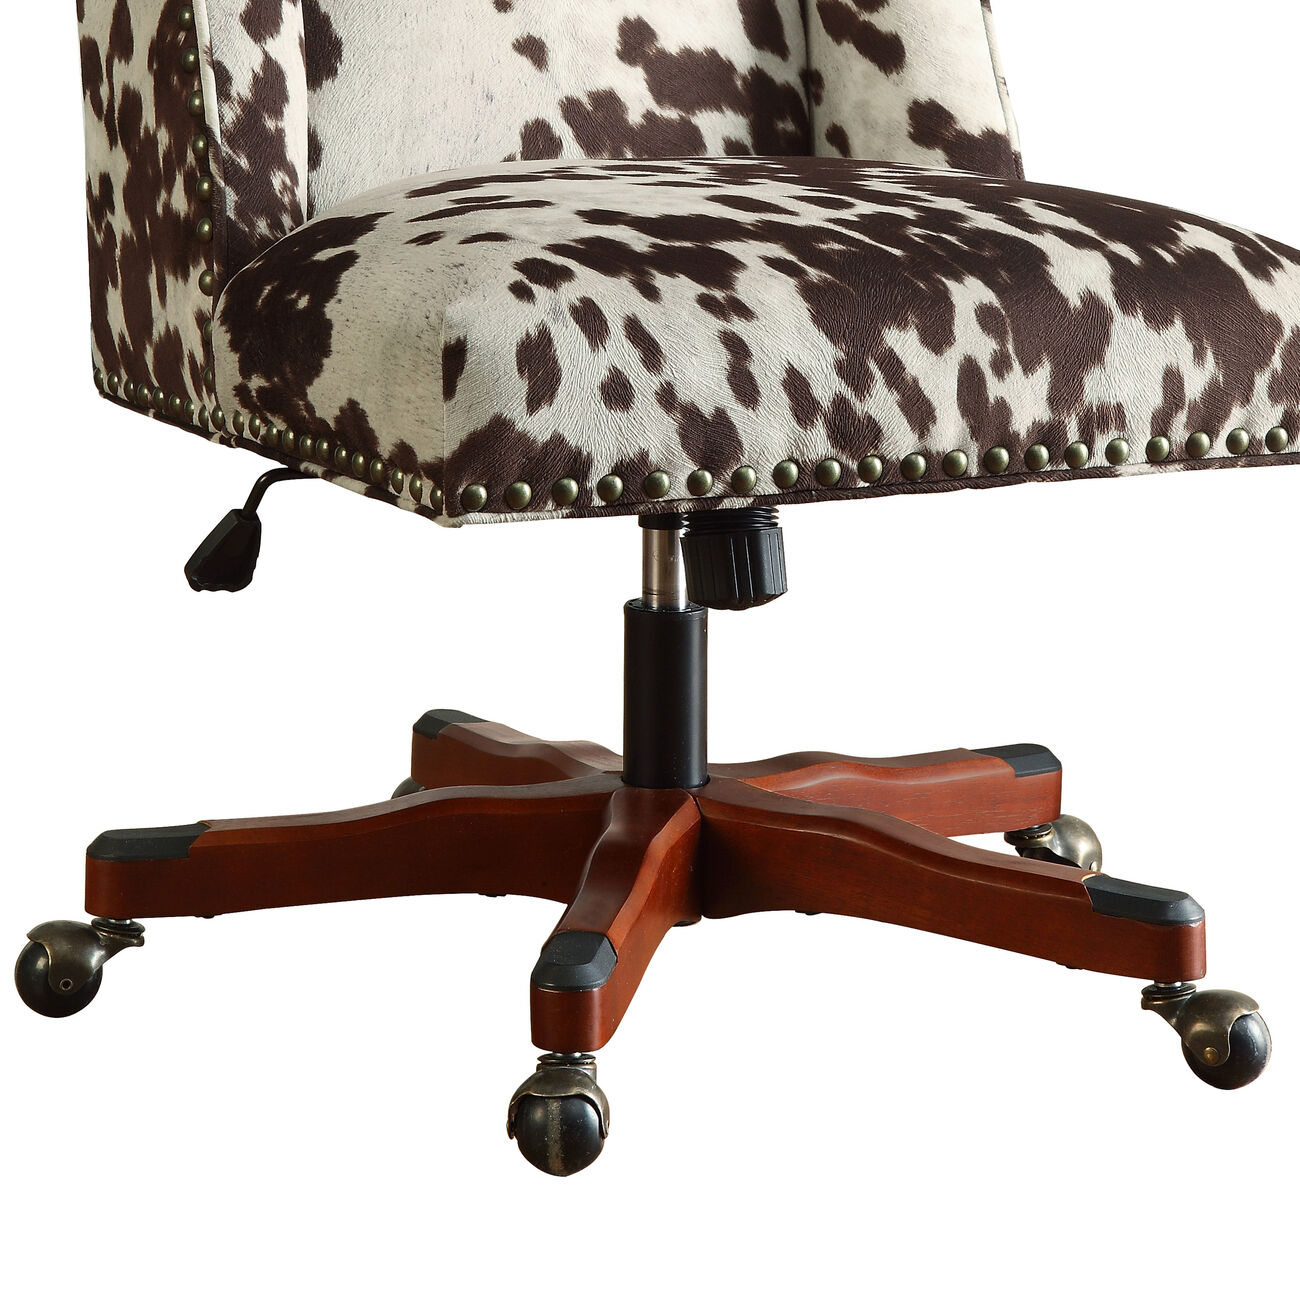 Height Adjustable Swivel Office Chair with Wood Base, Brown and White